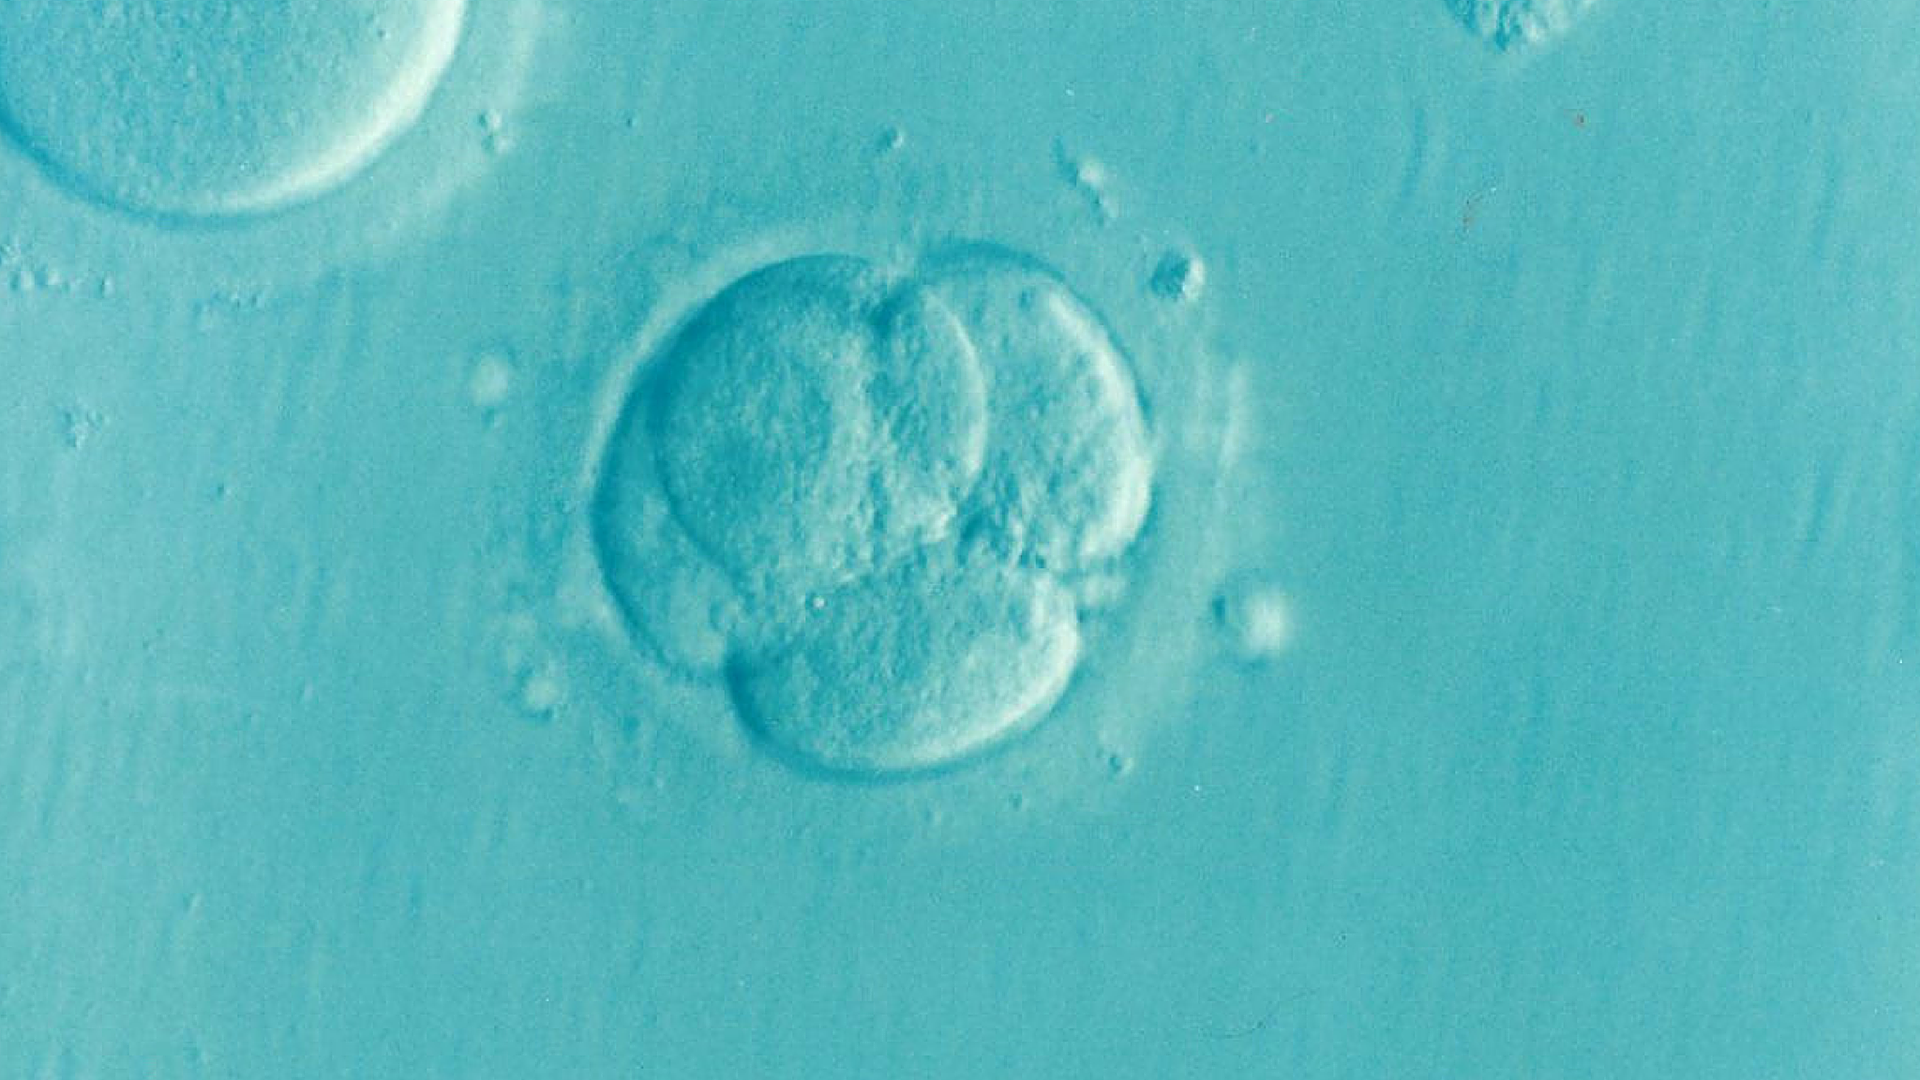 Human embryo on blue background